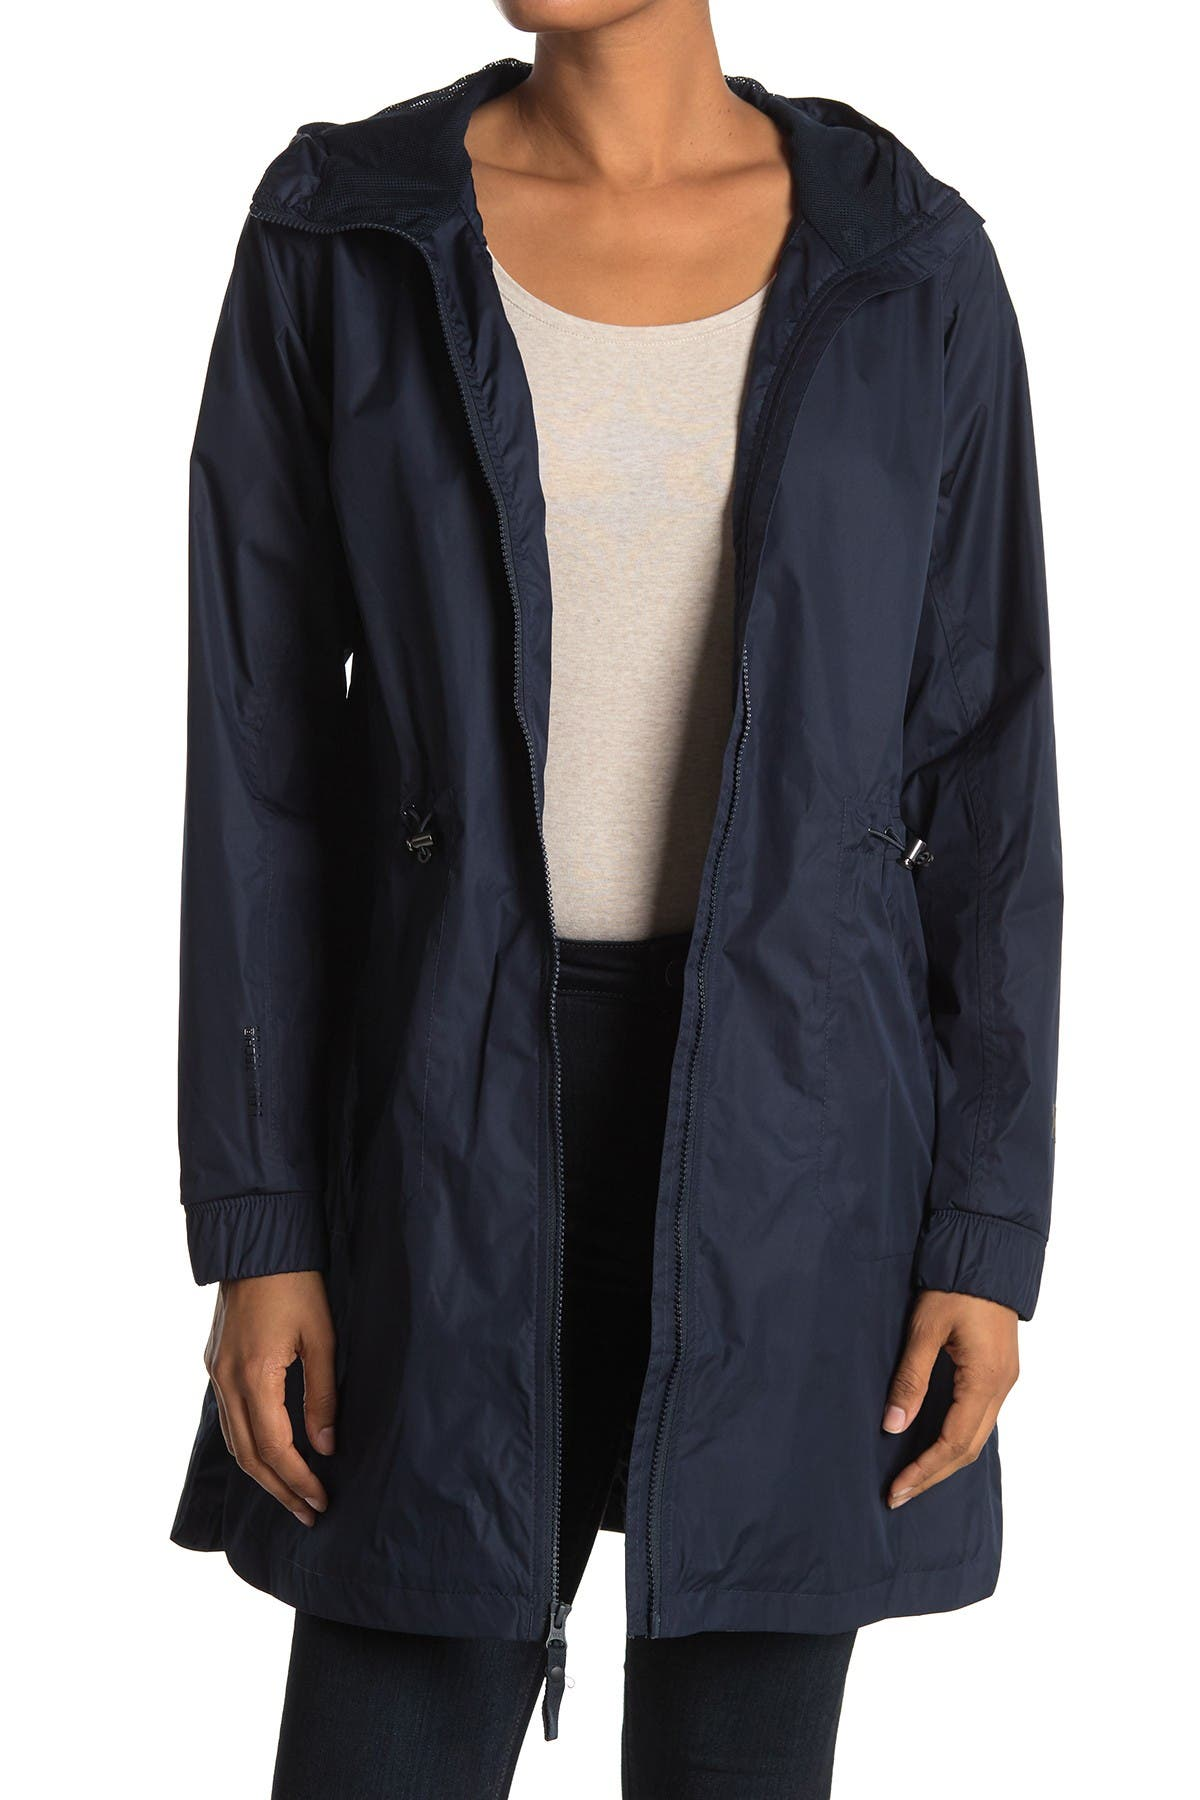 Image of Helly Hansen Iona Hooded Waterproof Rain Jacket